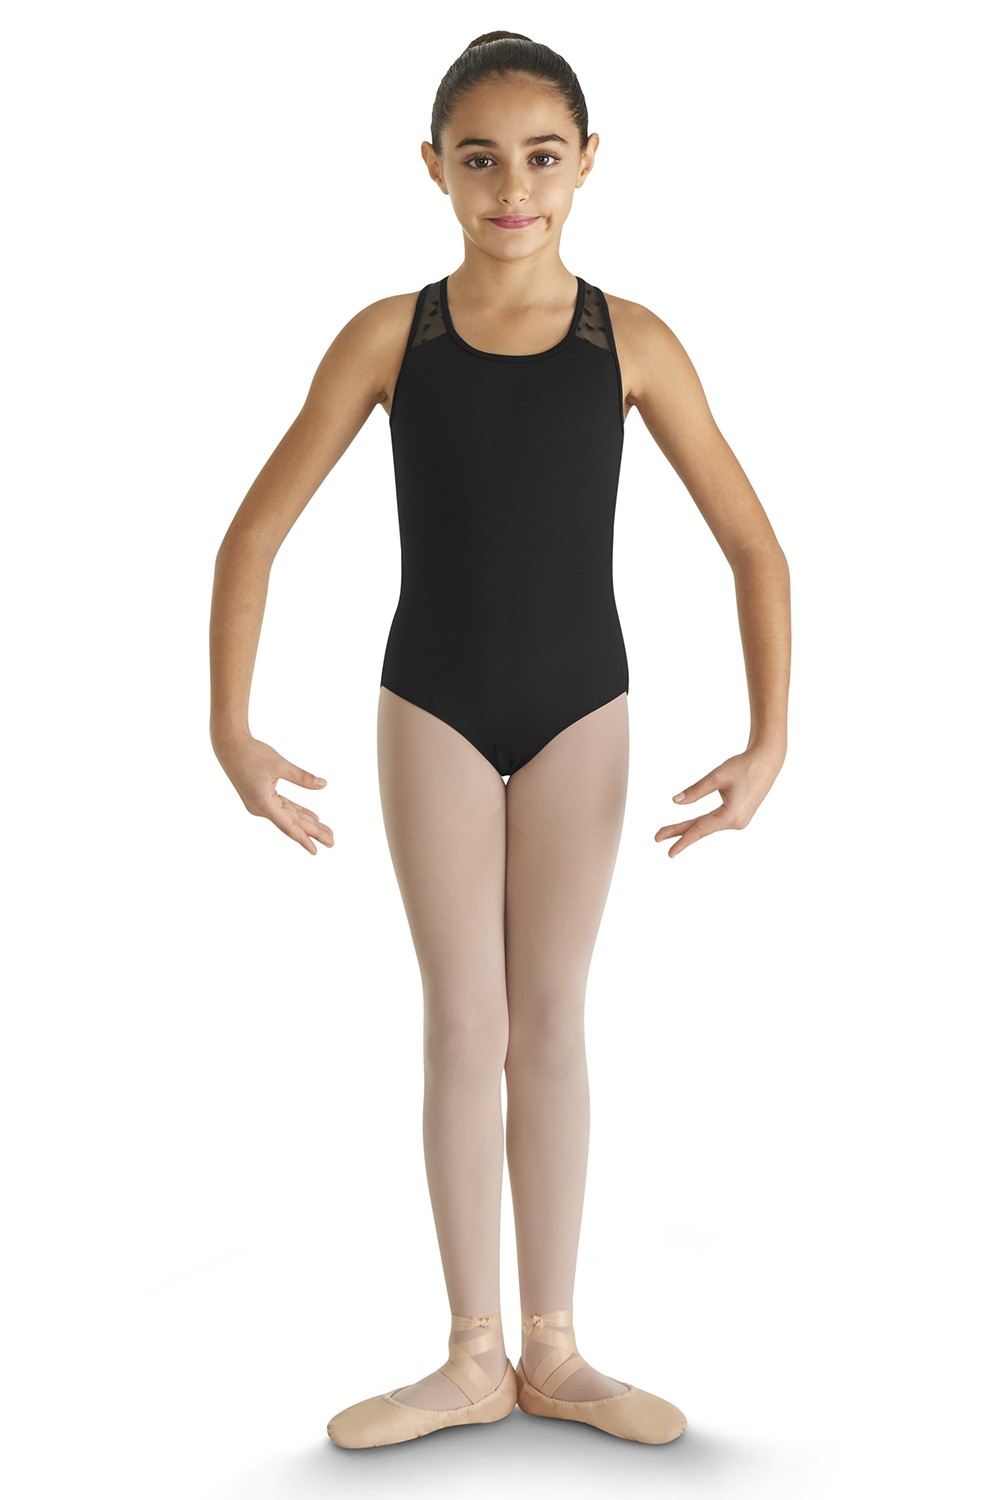 Agrona Children's Dance Leotards